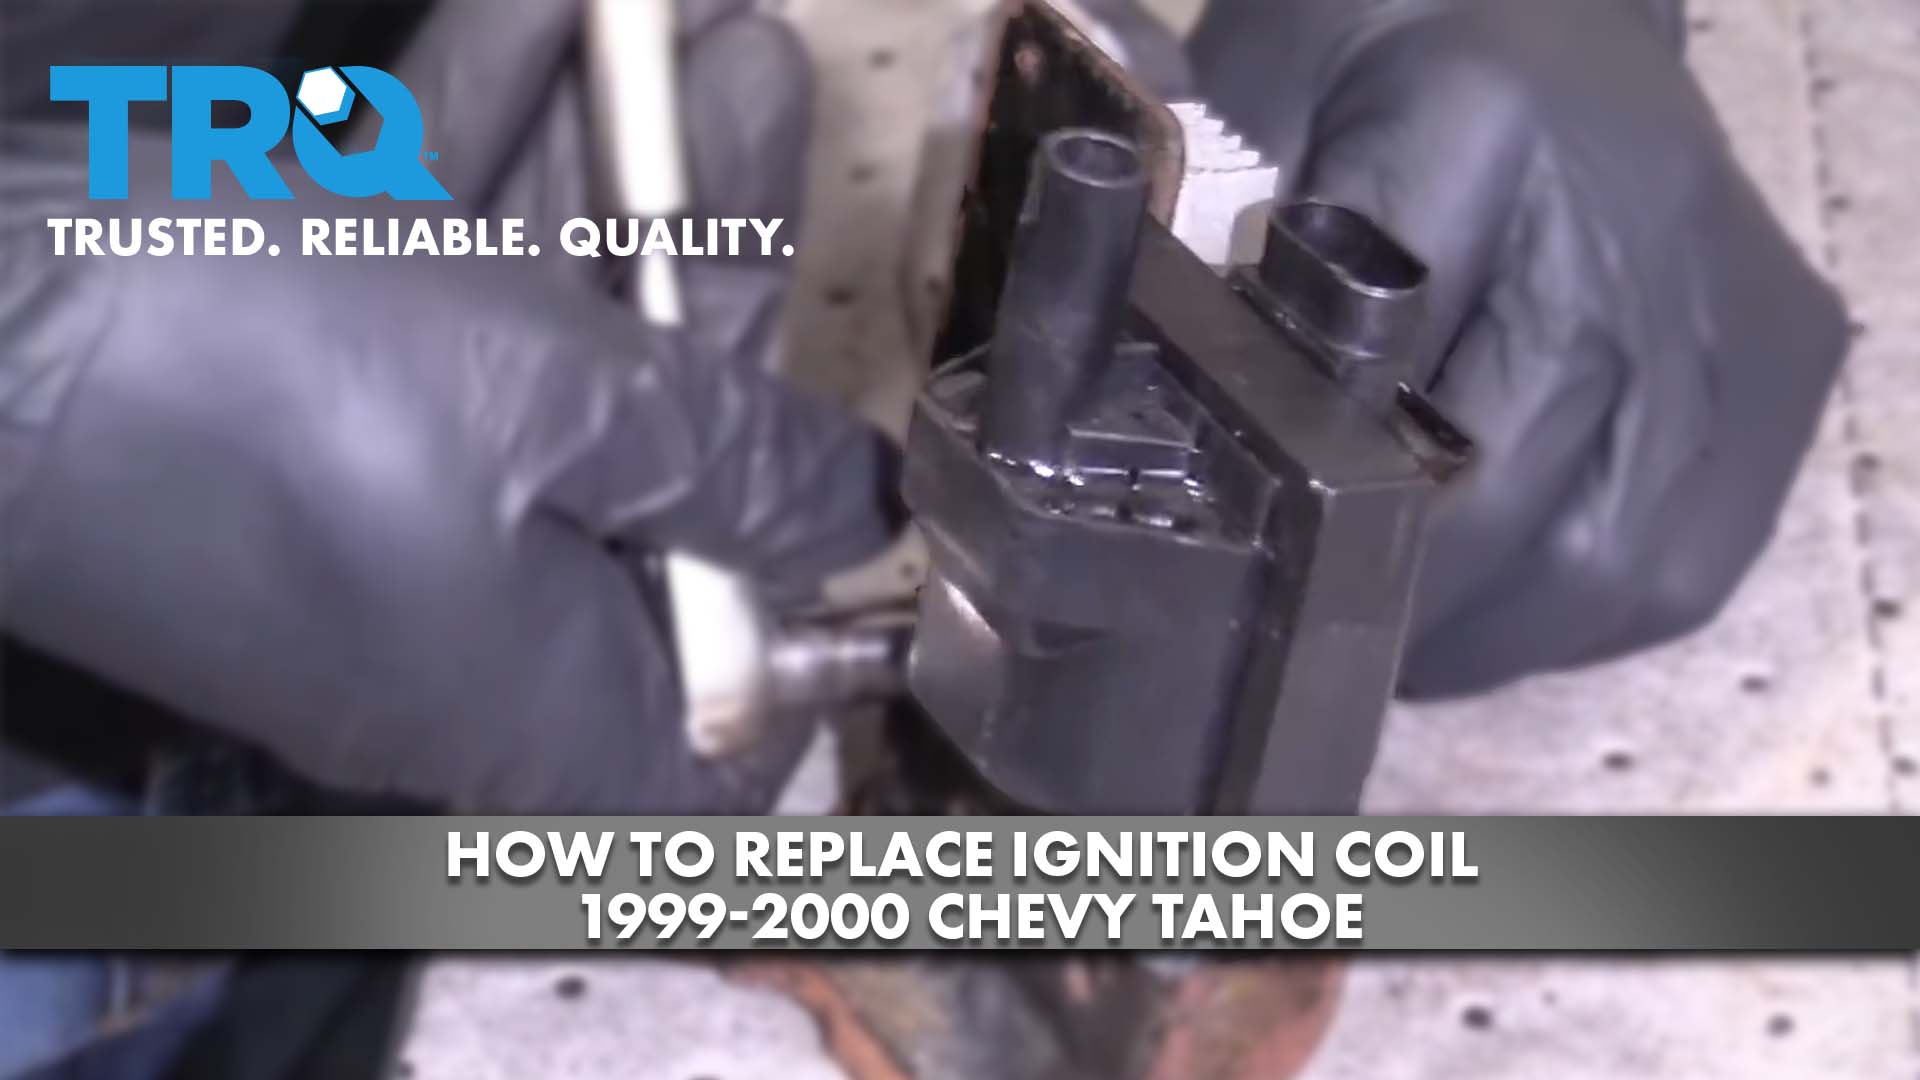 How to Replace Ignition Coil 1999-00 Chevy Tahoe